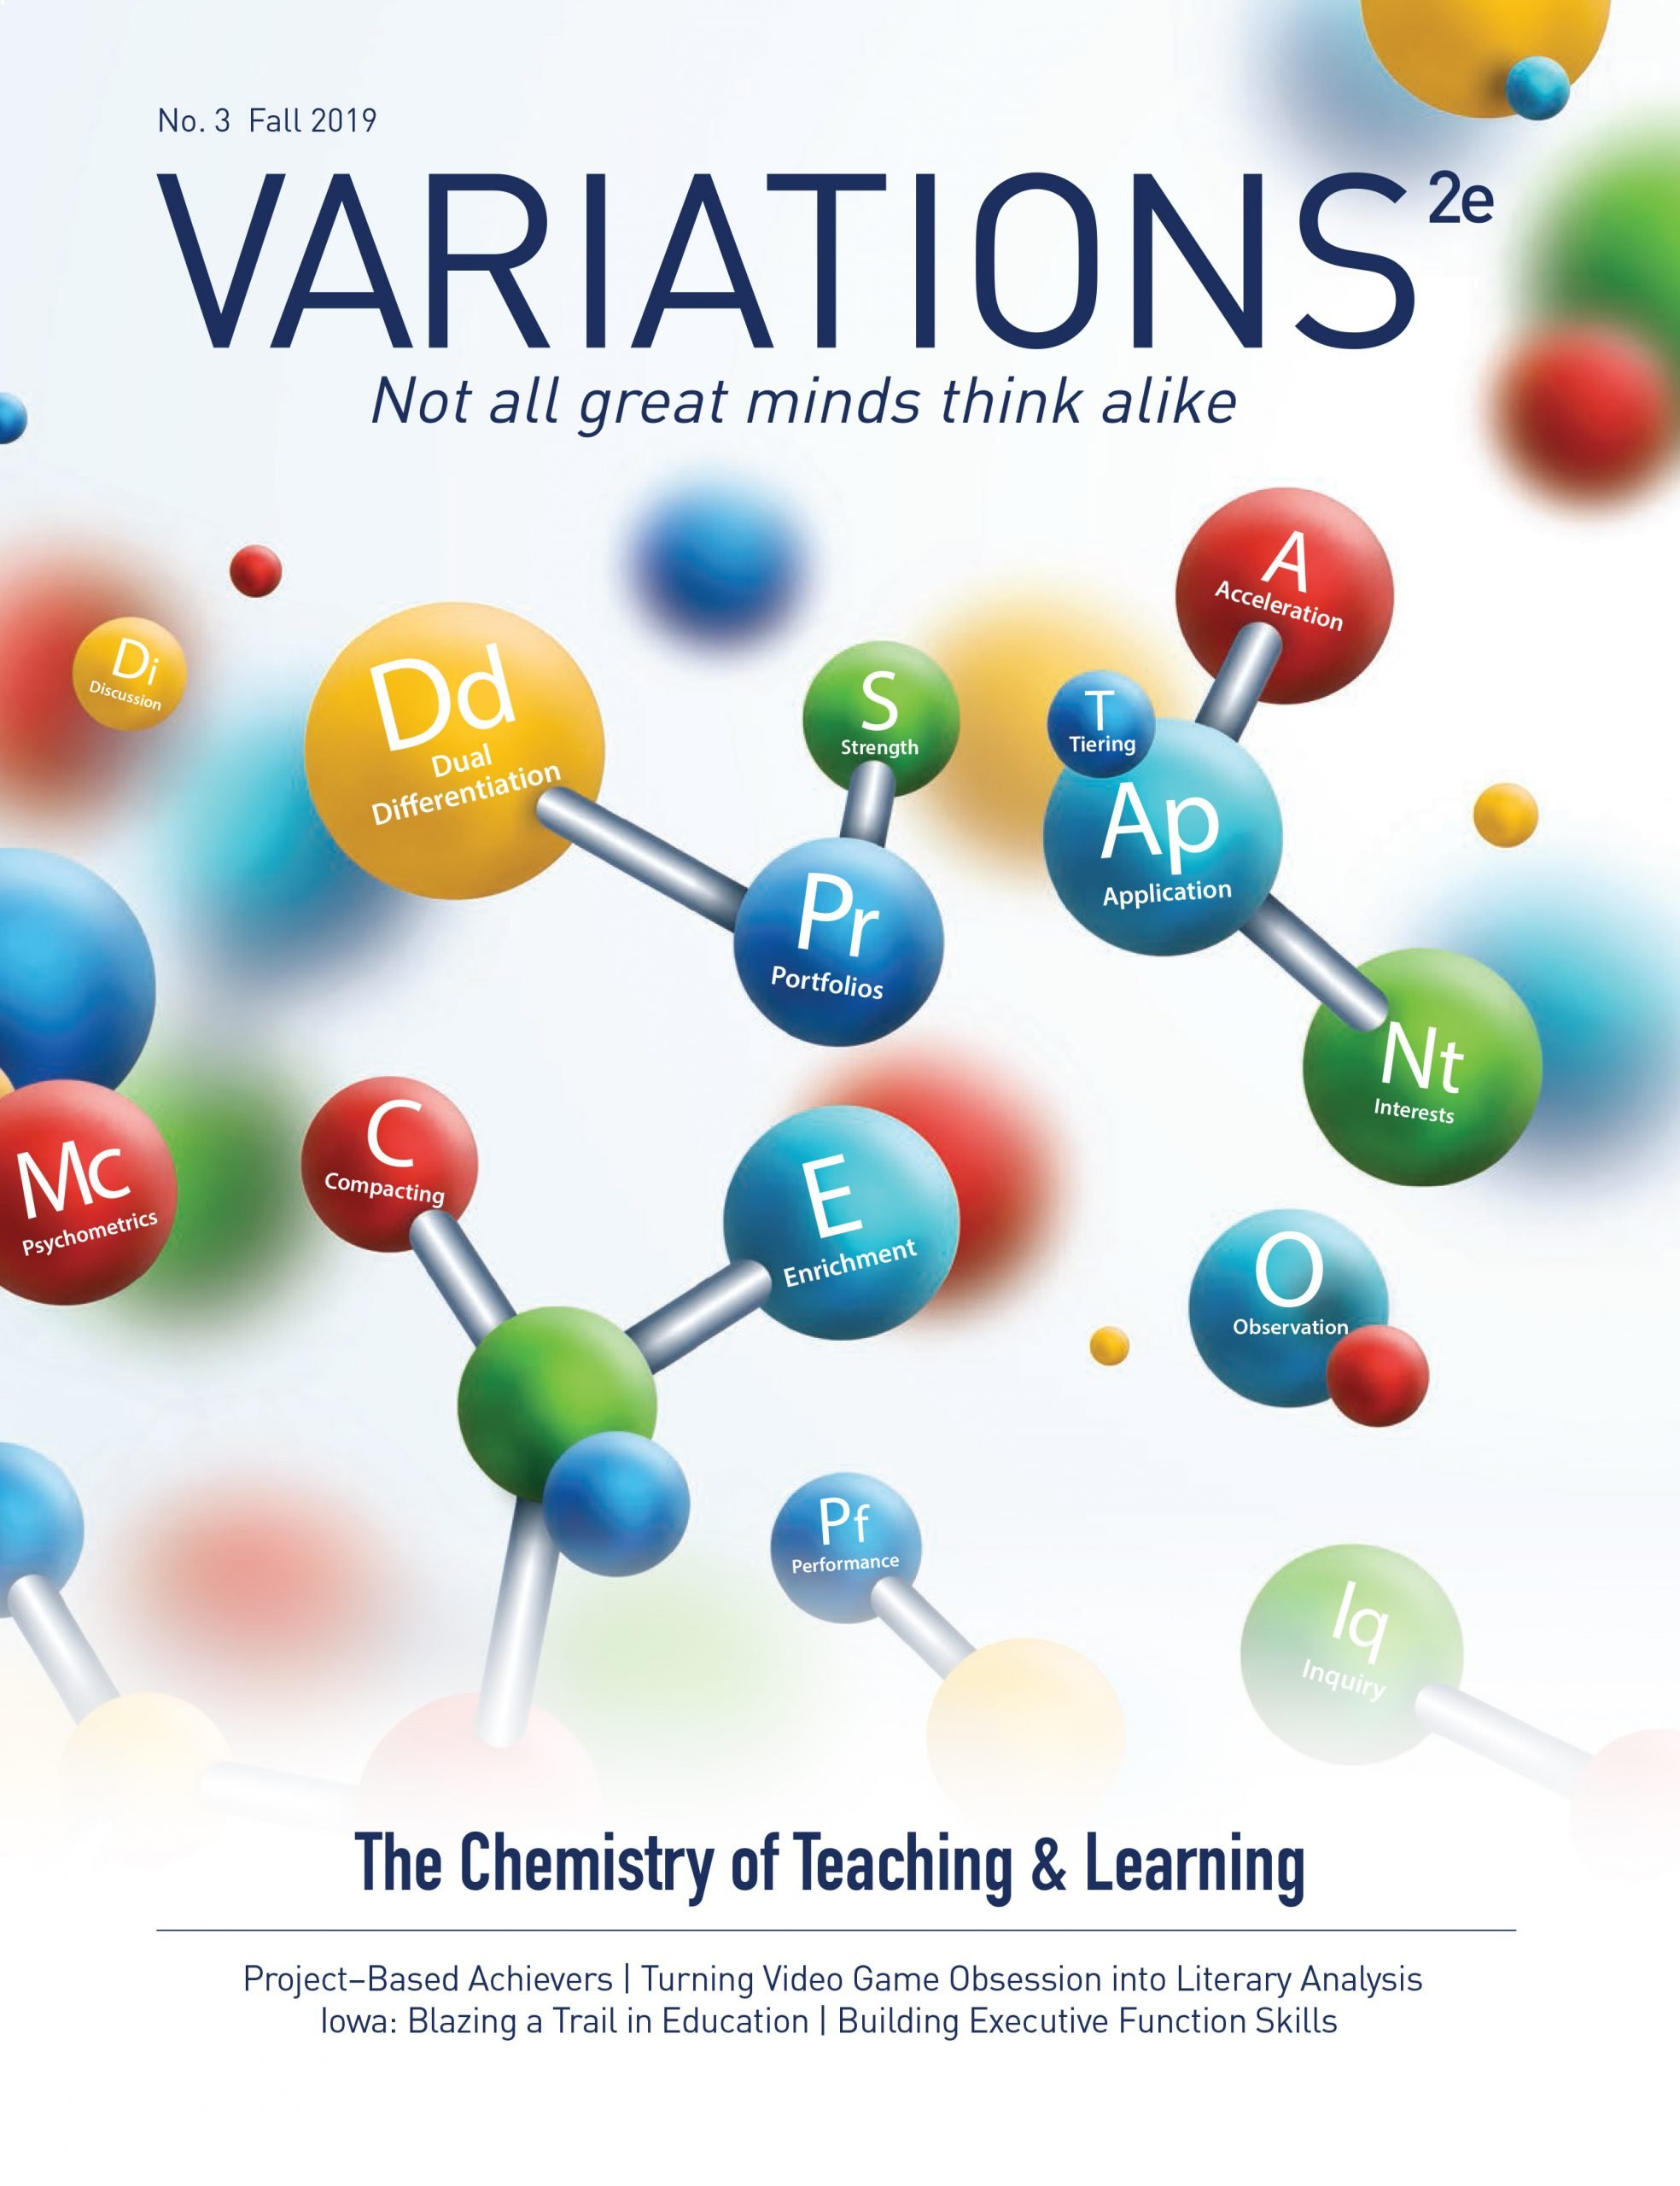 Variations2e Magazine Issue 3 Cover